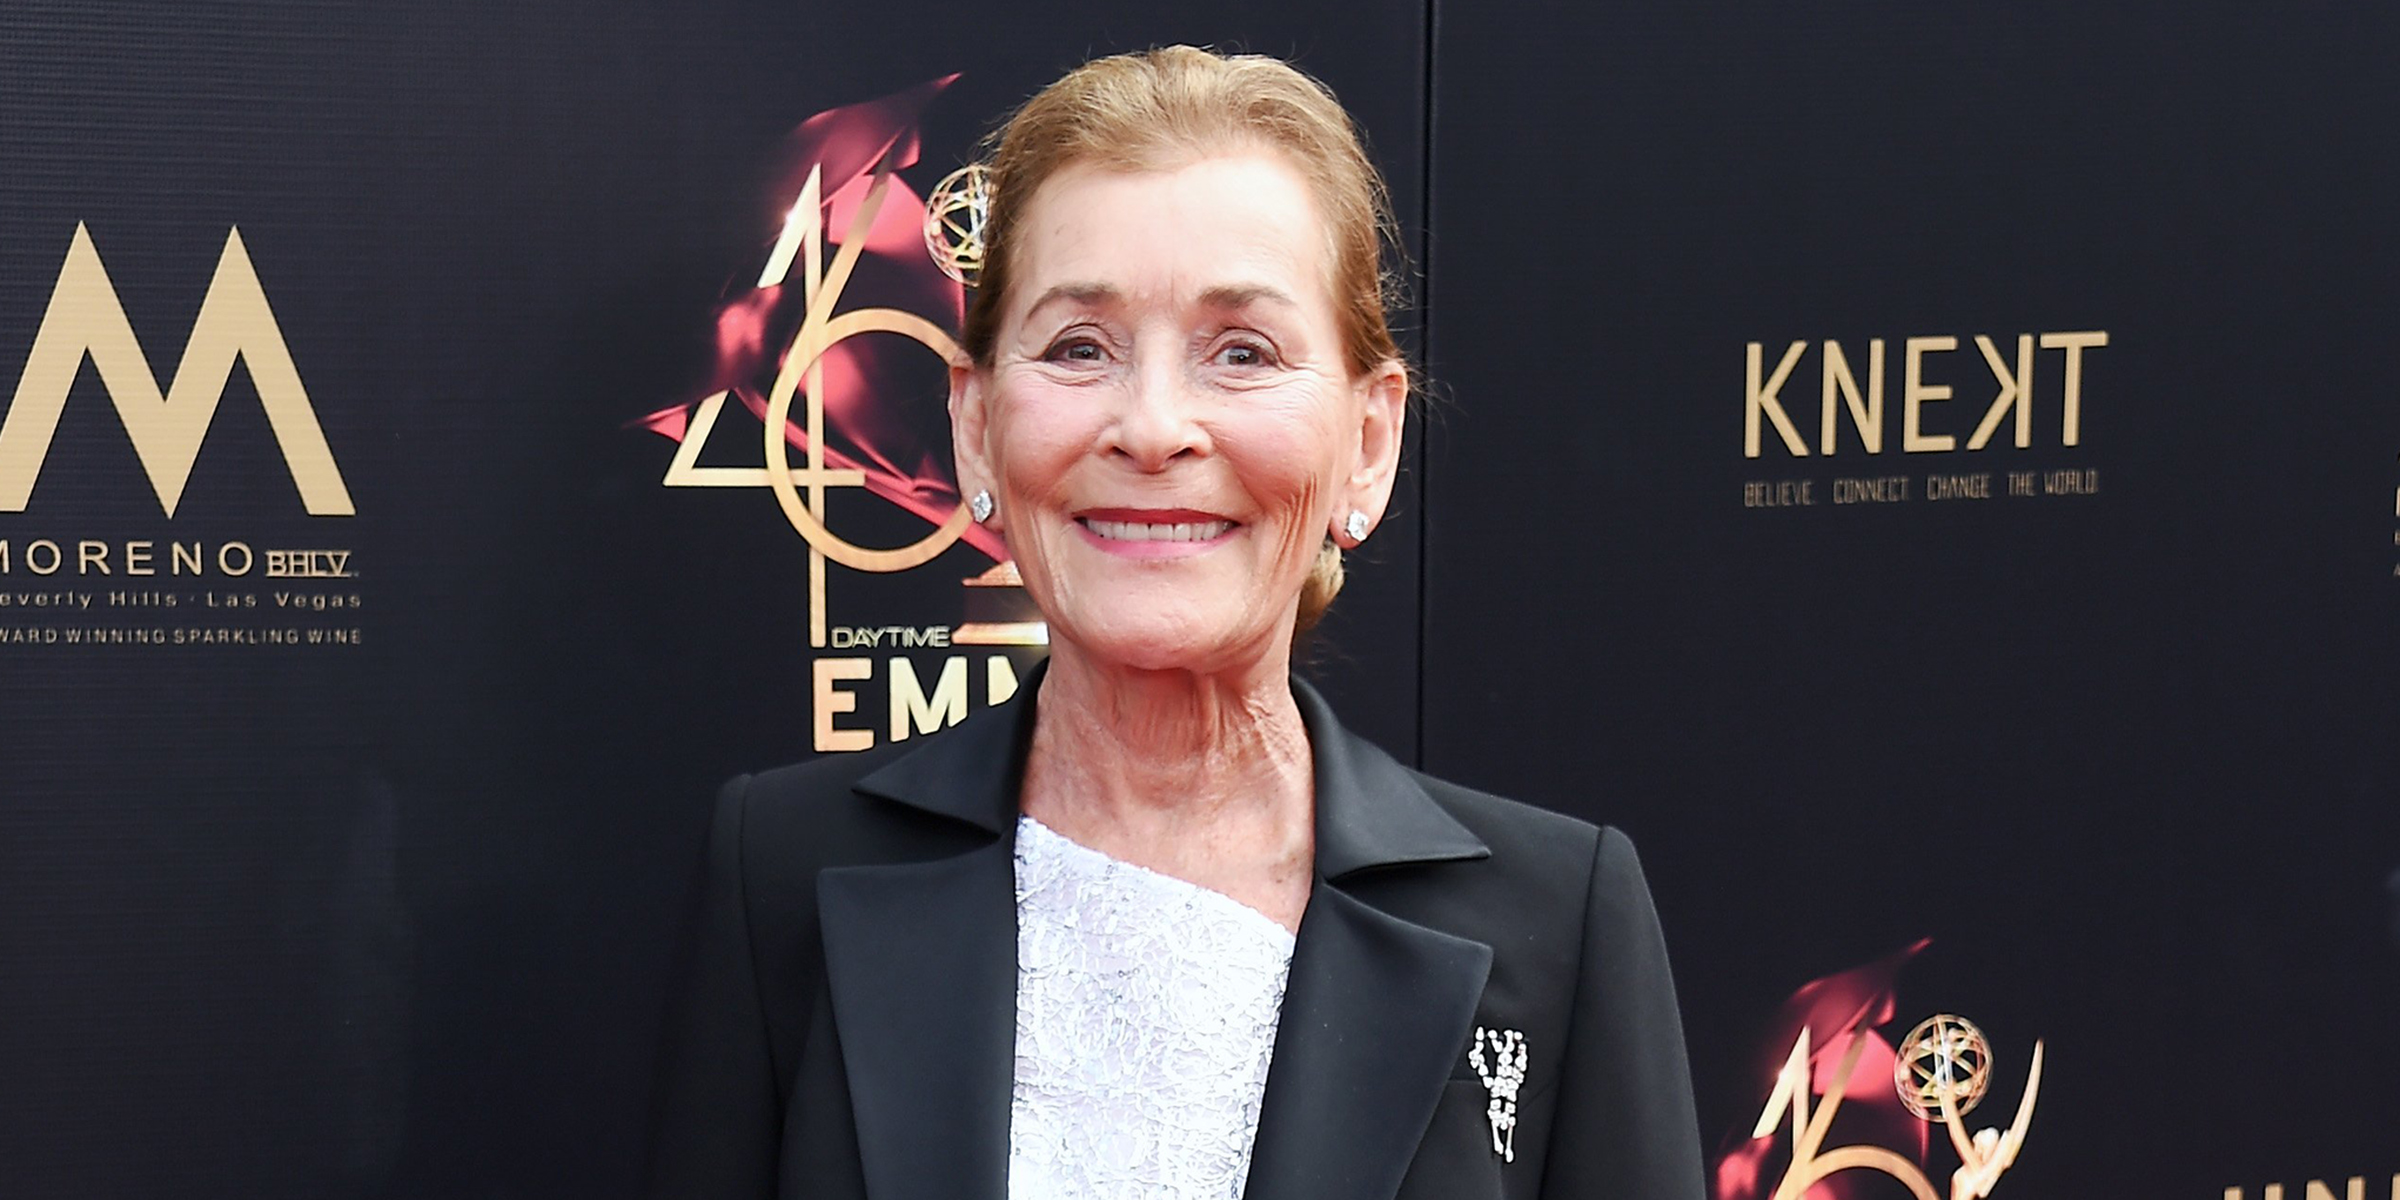 judge judy says her new hairdo is easy, comfy and 'here to stay'